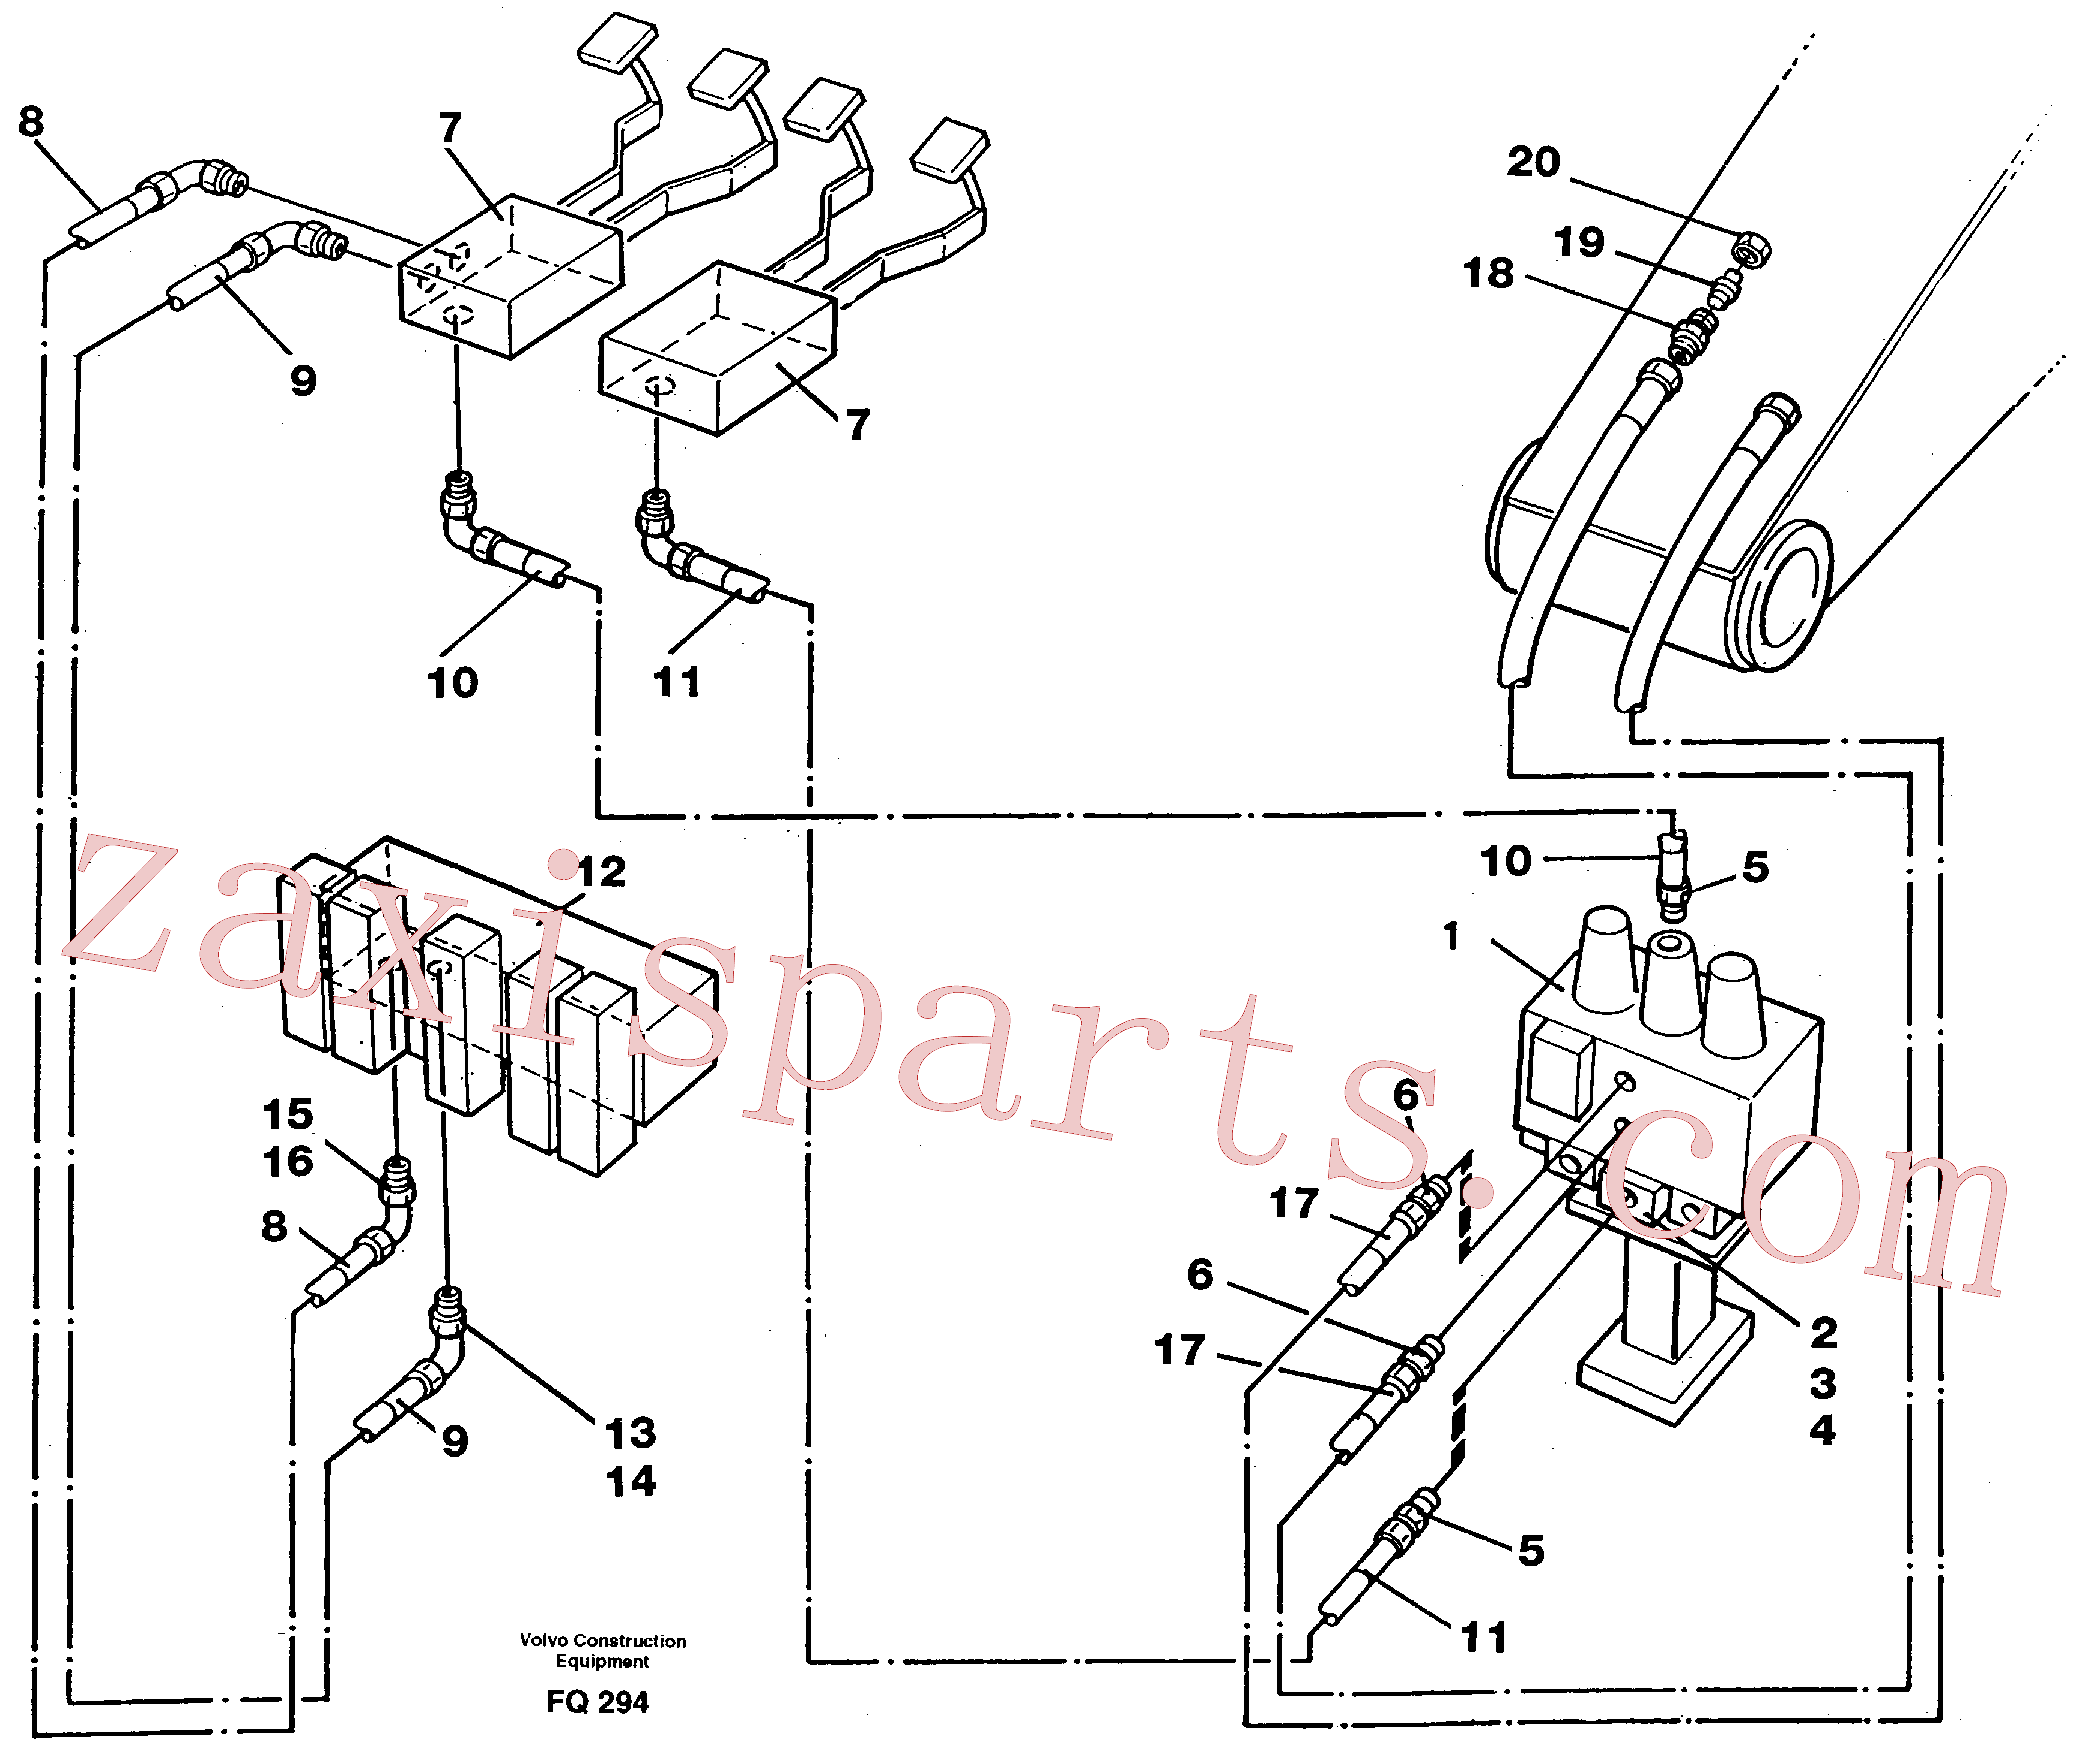 VOE14250294 for Volvo Slope bucket/rotator equipment for mono-boom in base machine(FQ294 assembly)